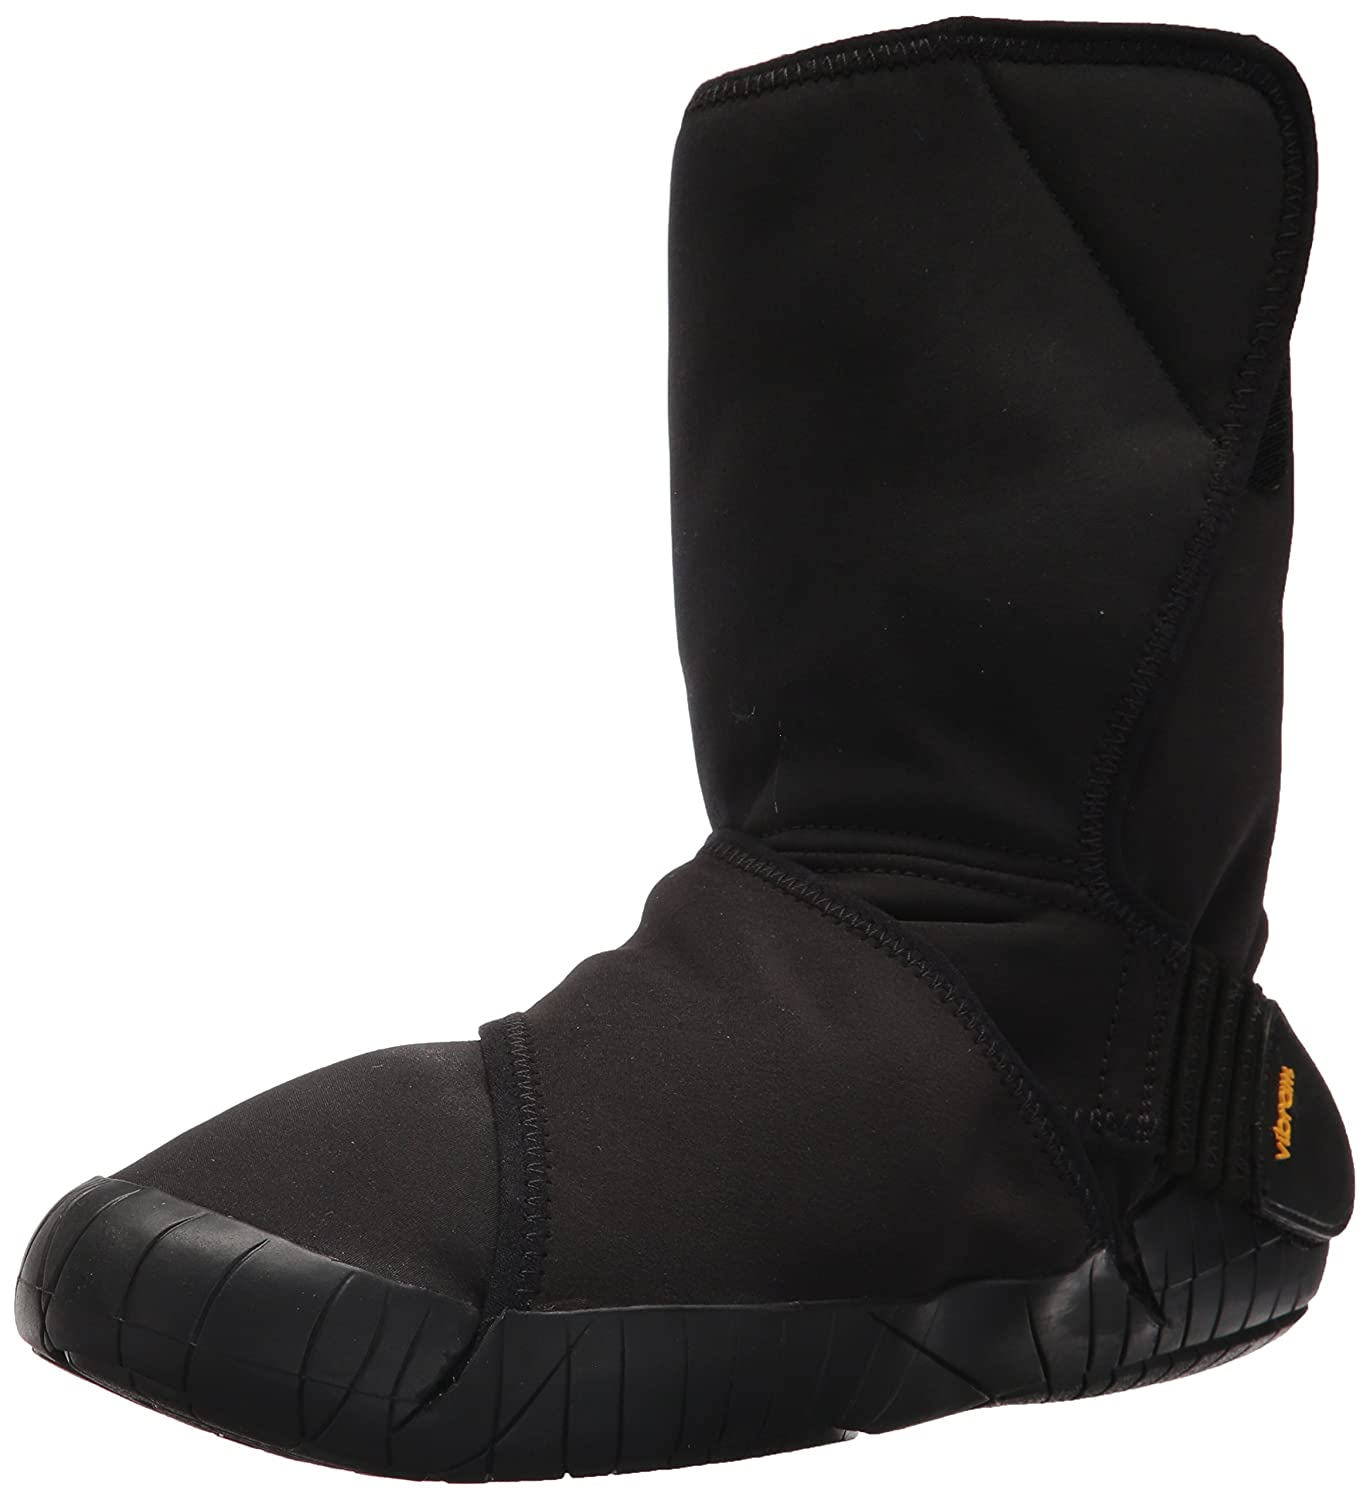 Vibram Fivefingers Mid-Boot New Yorker, Botas Clasicas Unisex Adulto